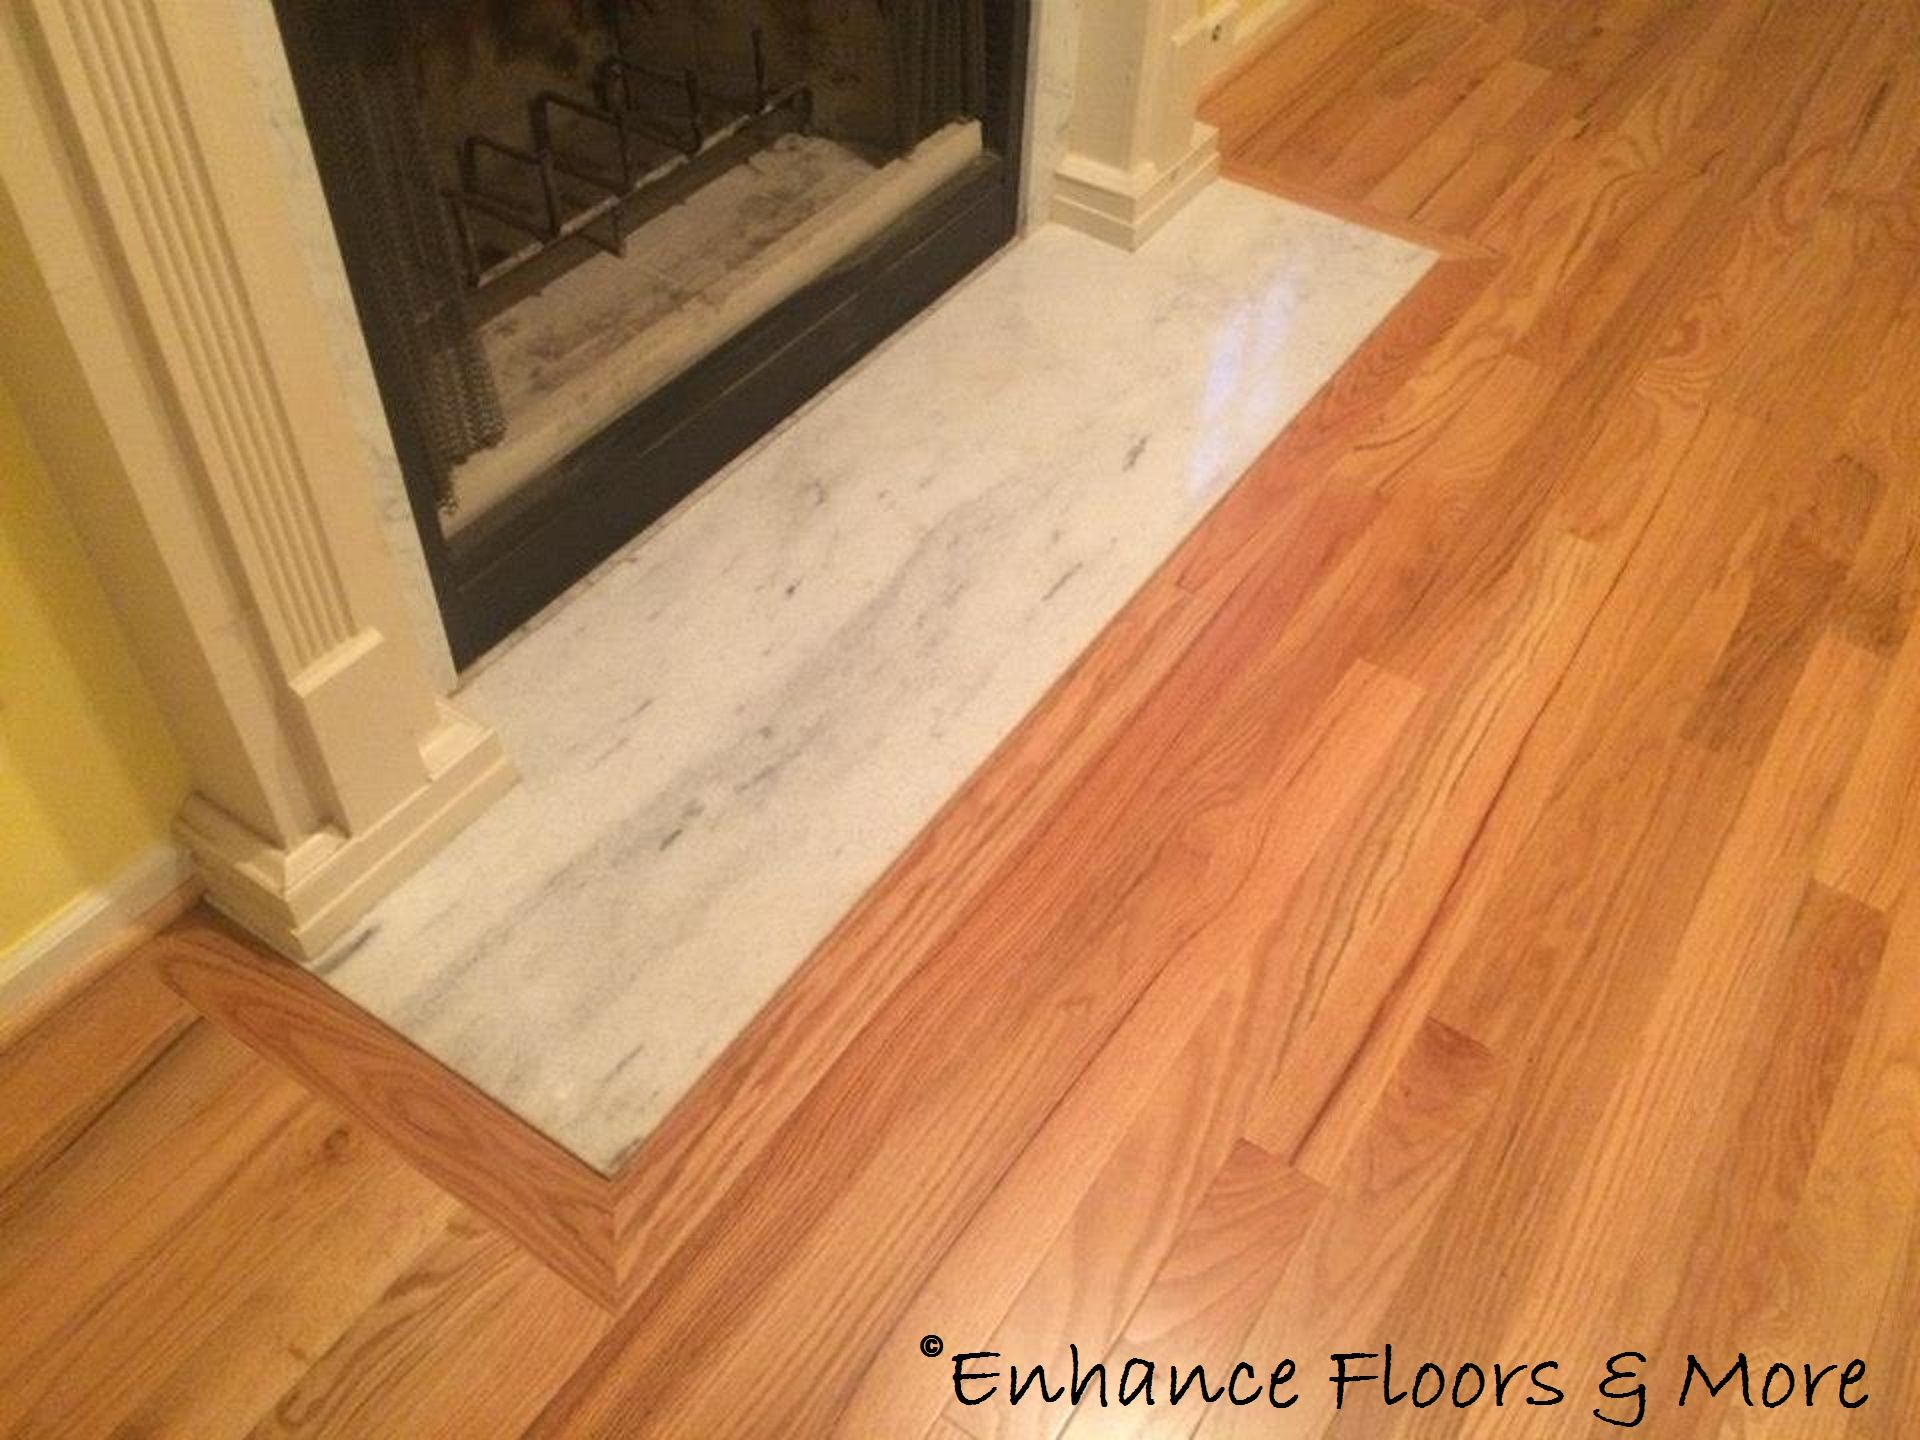 Picture framing around the fireplace Hardwood floors